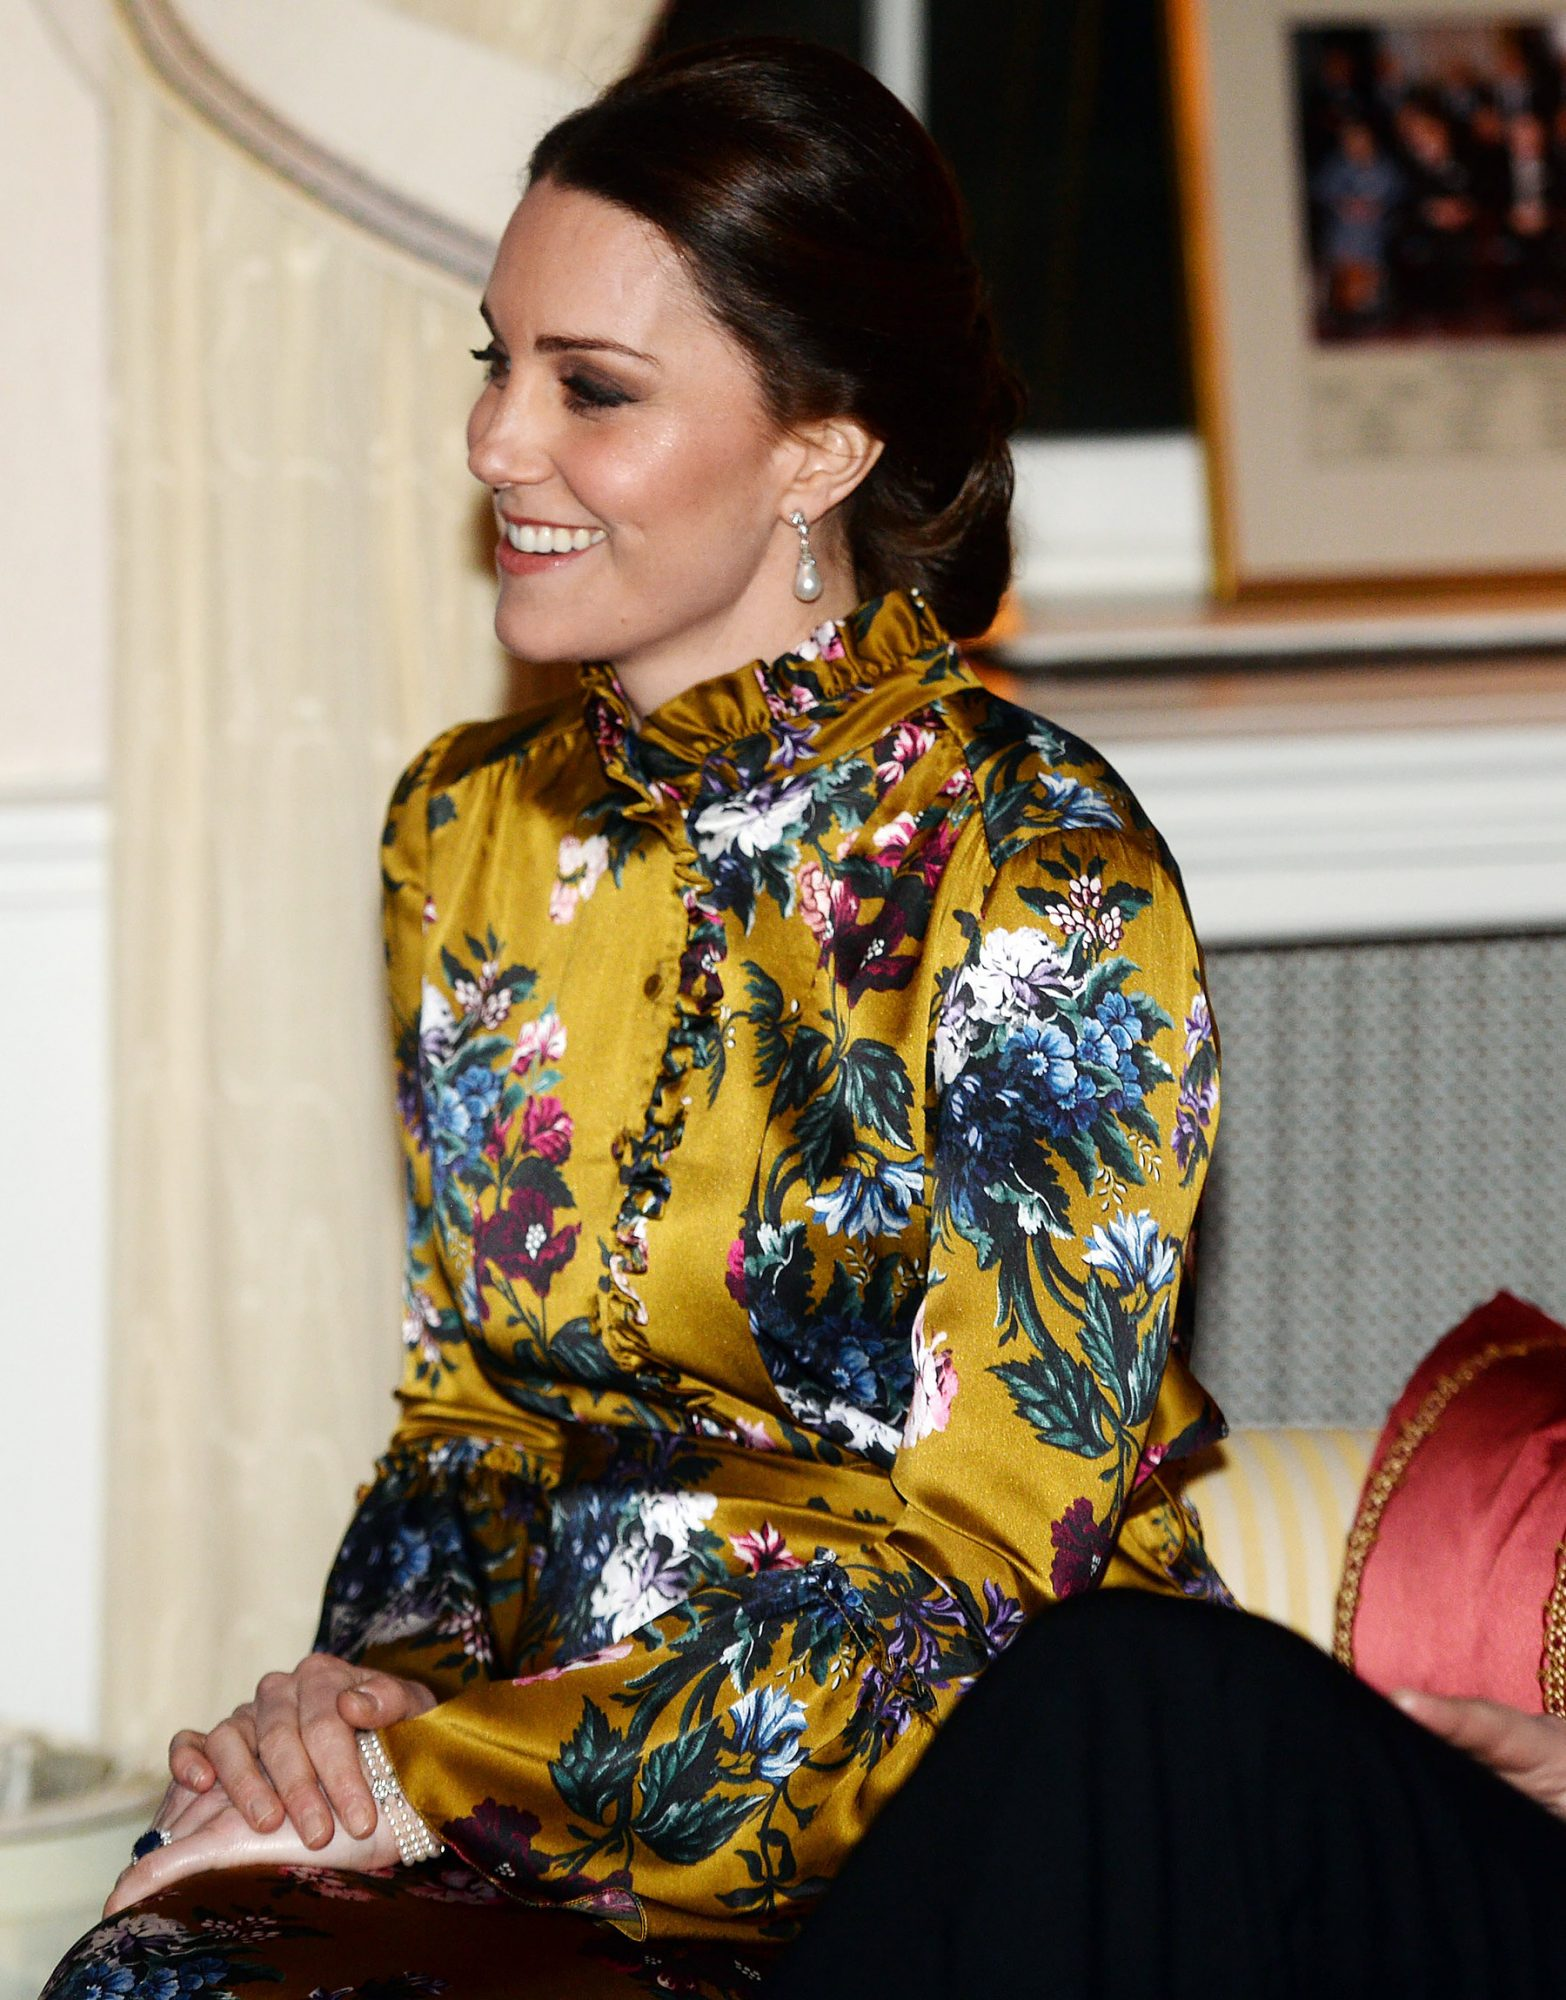 The Duke And Duchess Of Cambridge Visit Sweden And Norway - Day 1